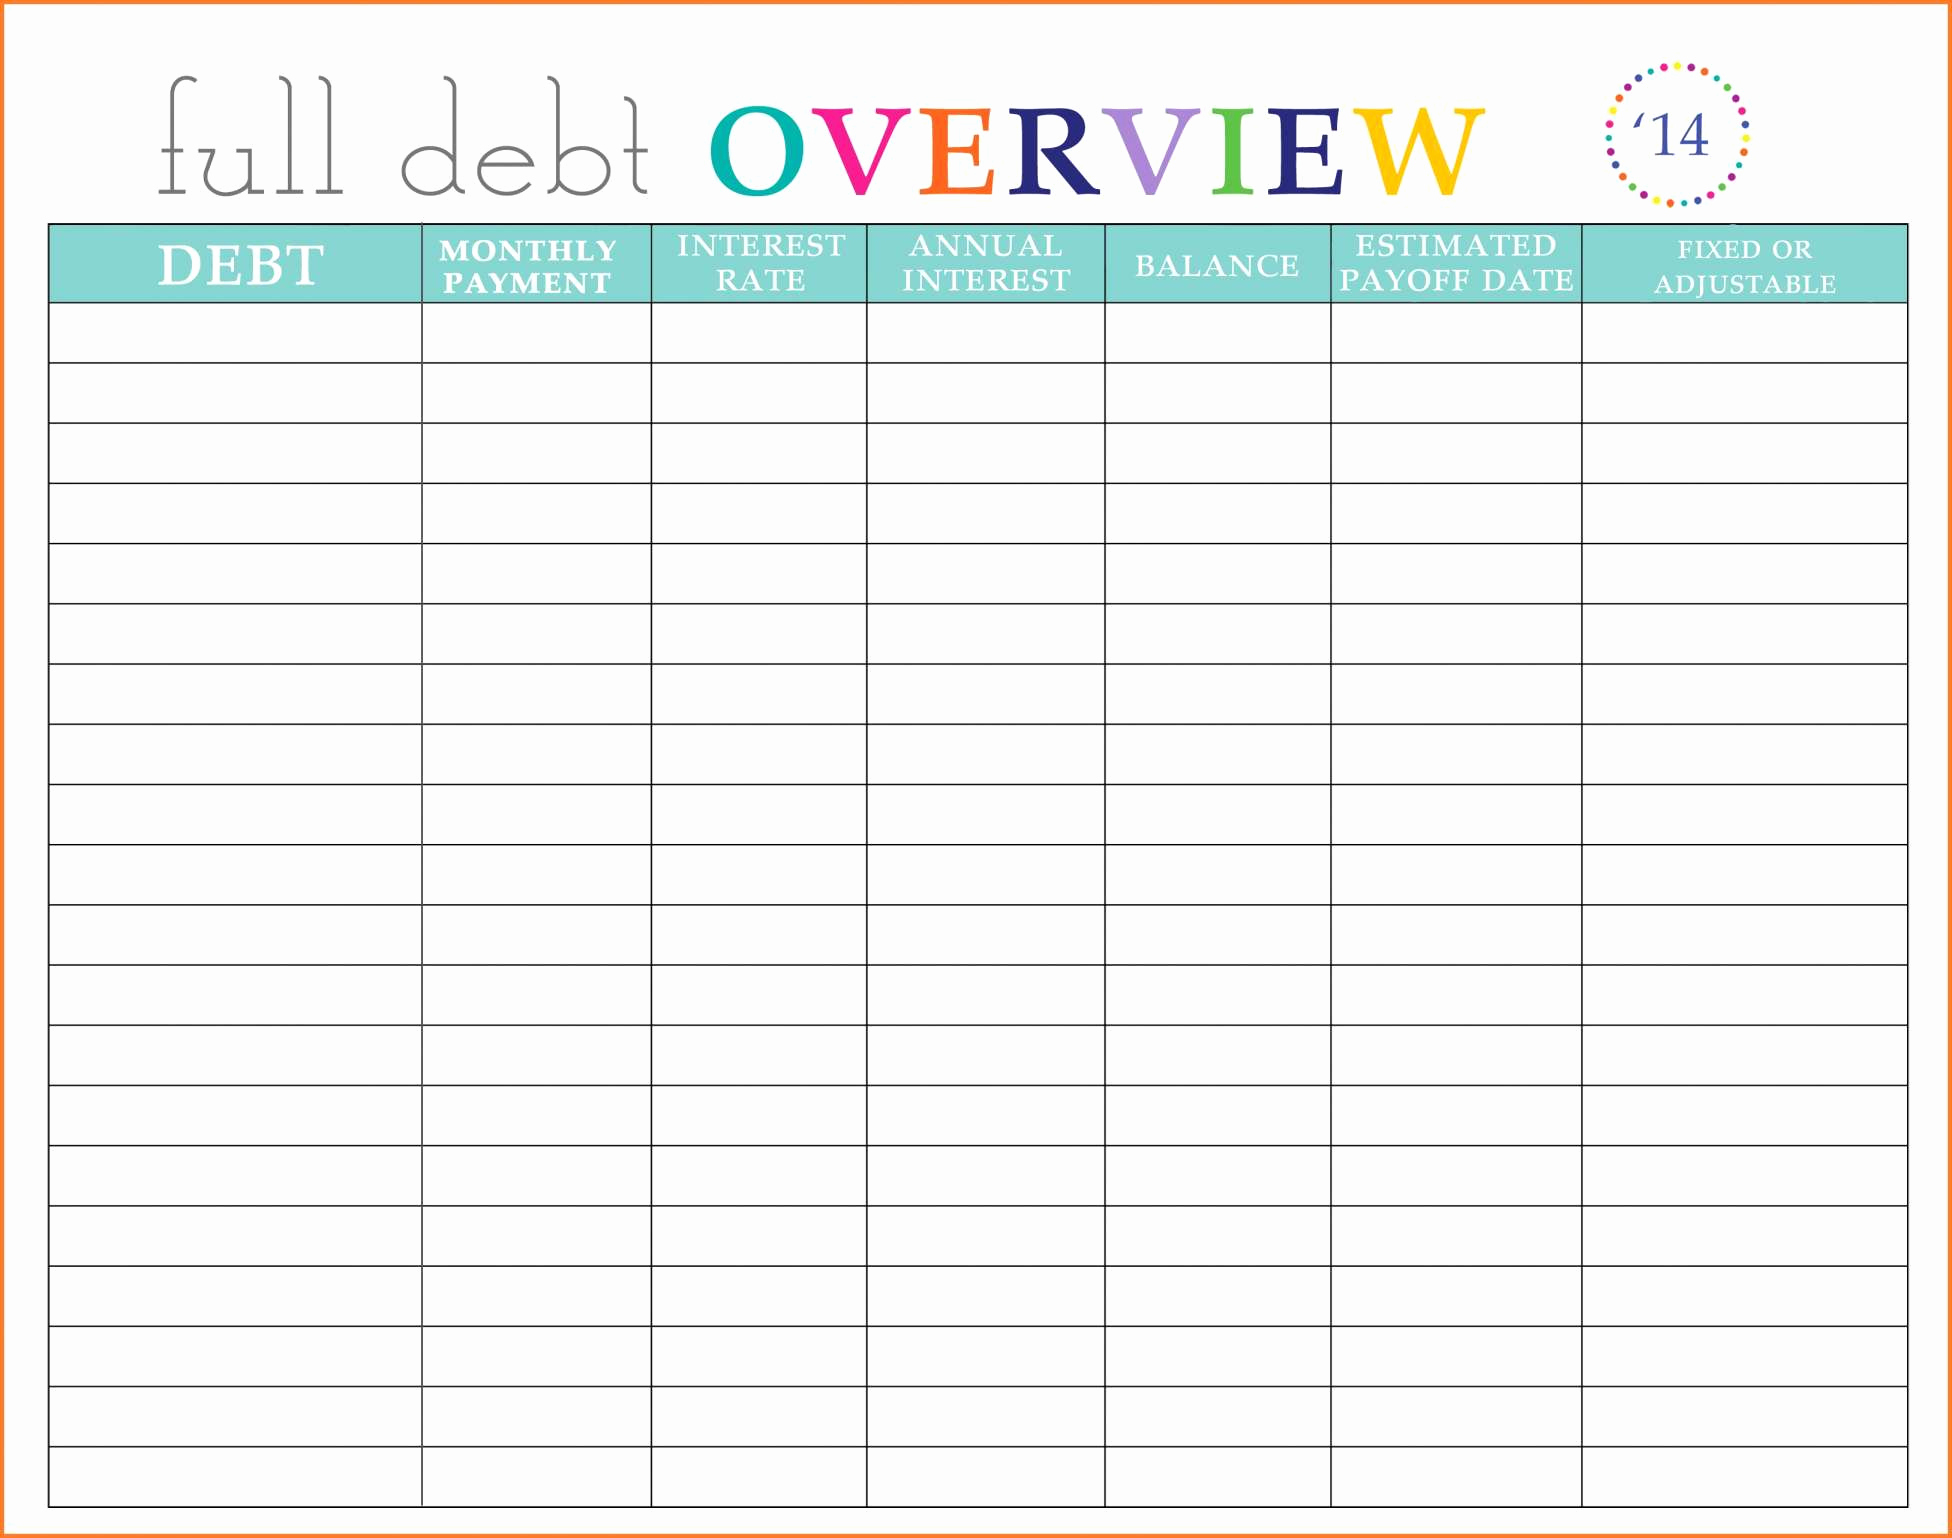 Lularoe Inventory Checklist Best Of Small Business Inventory Throughout Small Business Inventory Spreadsheet Template